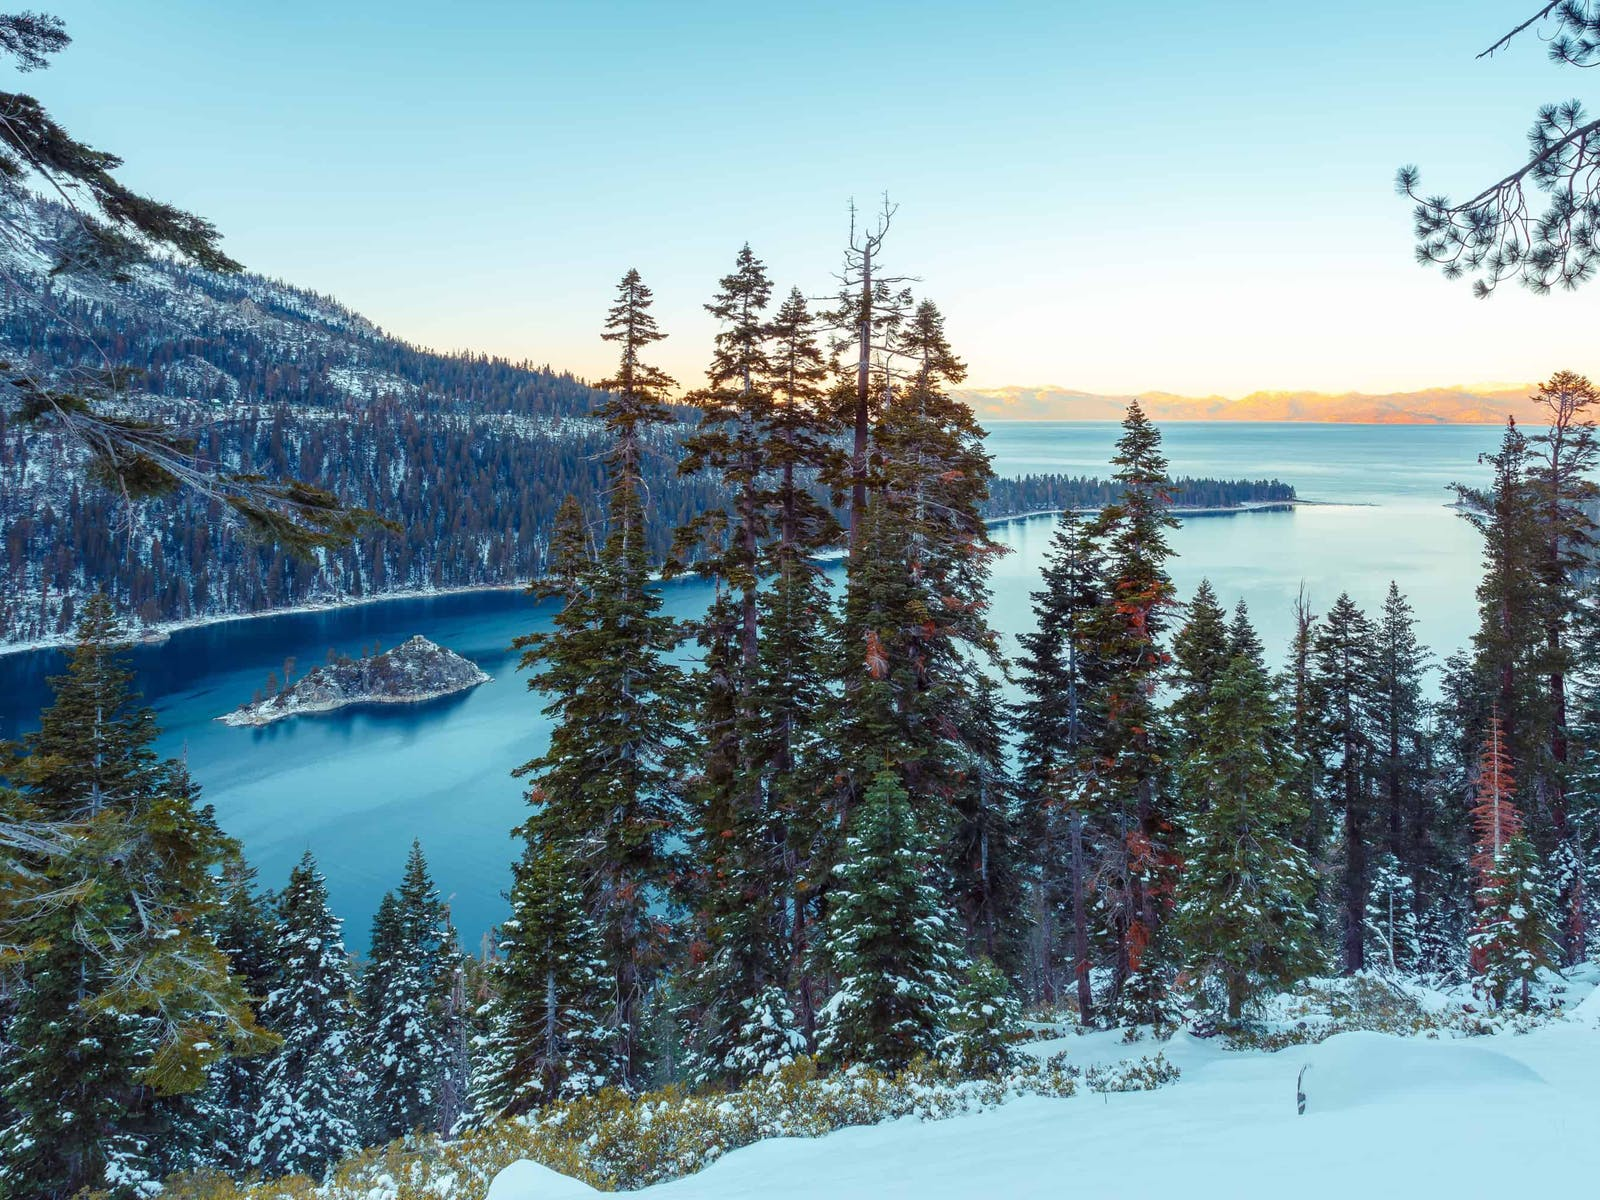 lake tahoe surrounded by snow-capped mountains and pine trees